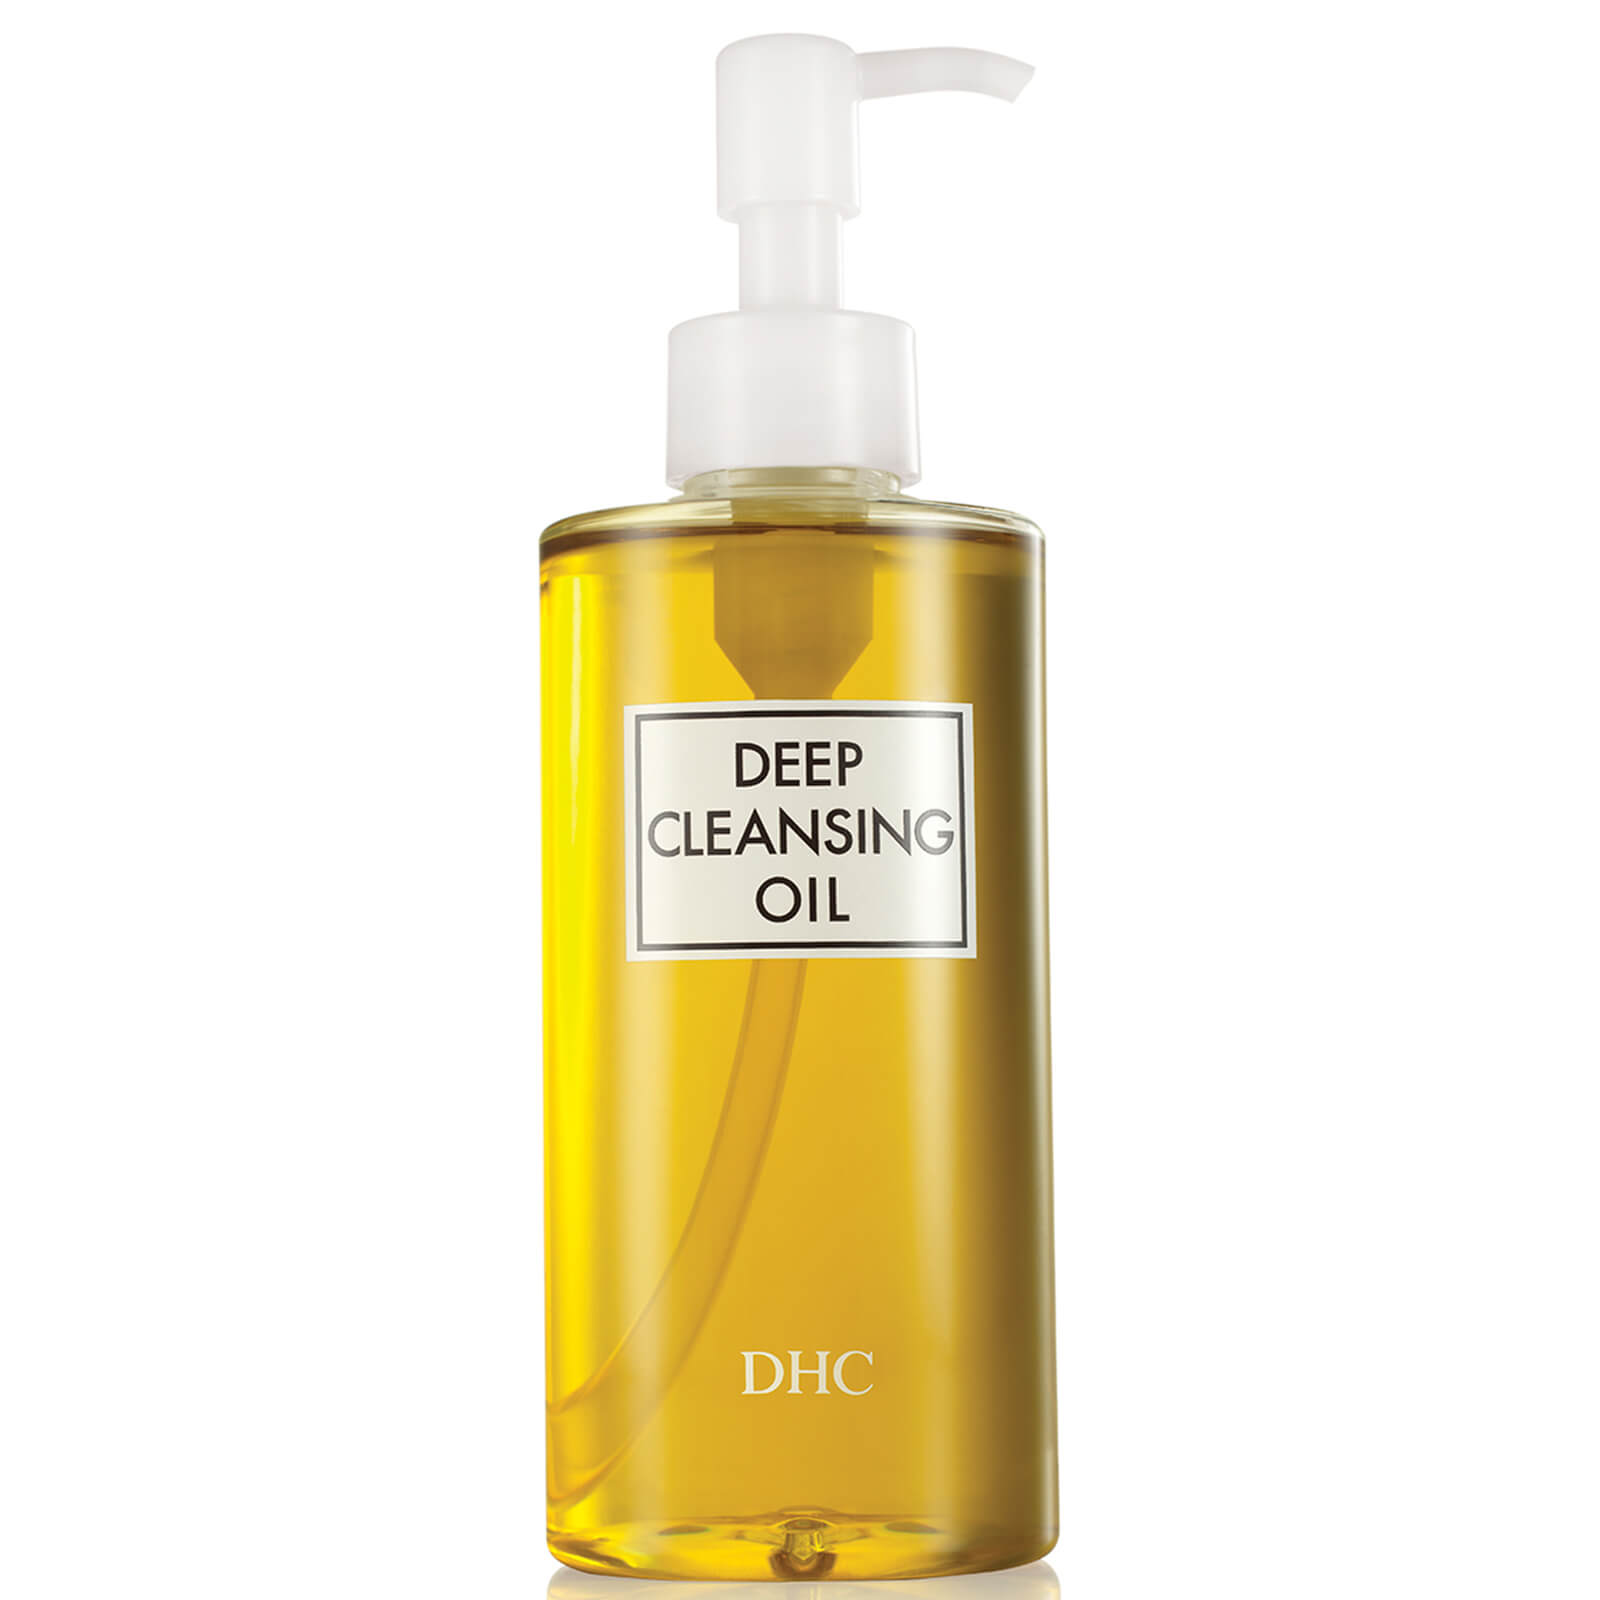 Facial deep cleaning oil products are